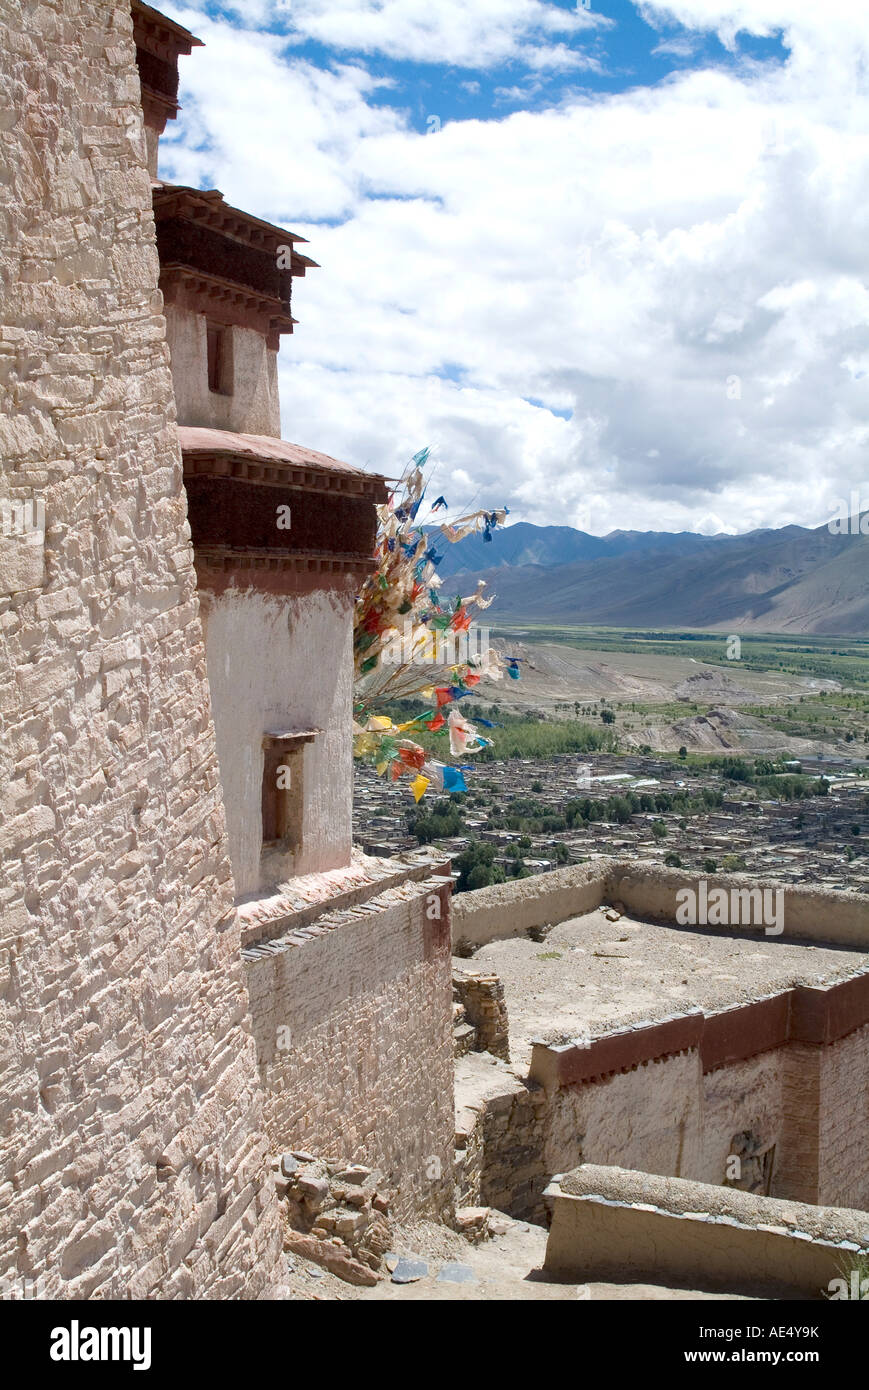 View from Fort, Gyantse, Tibet, China, Asia - Stock Image